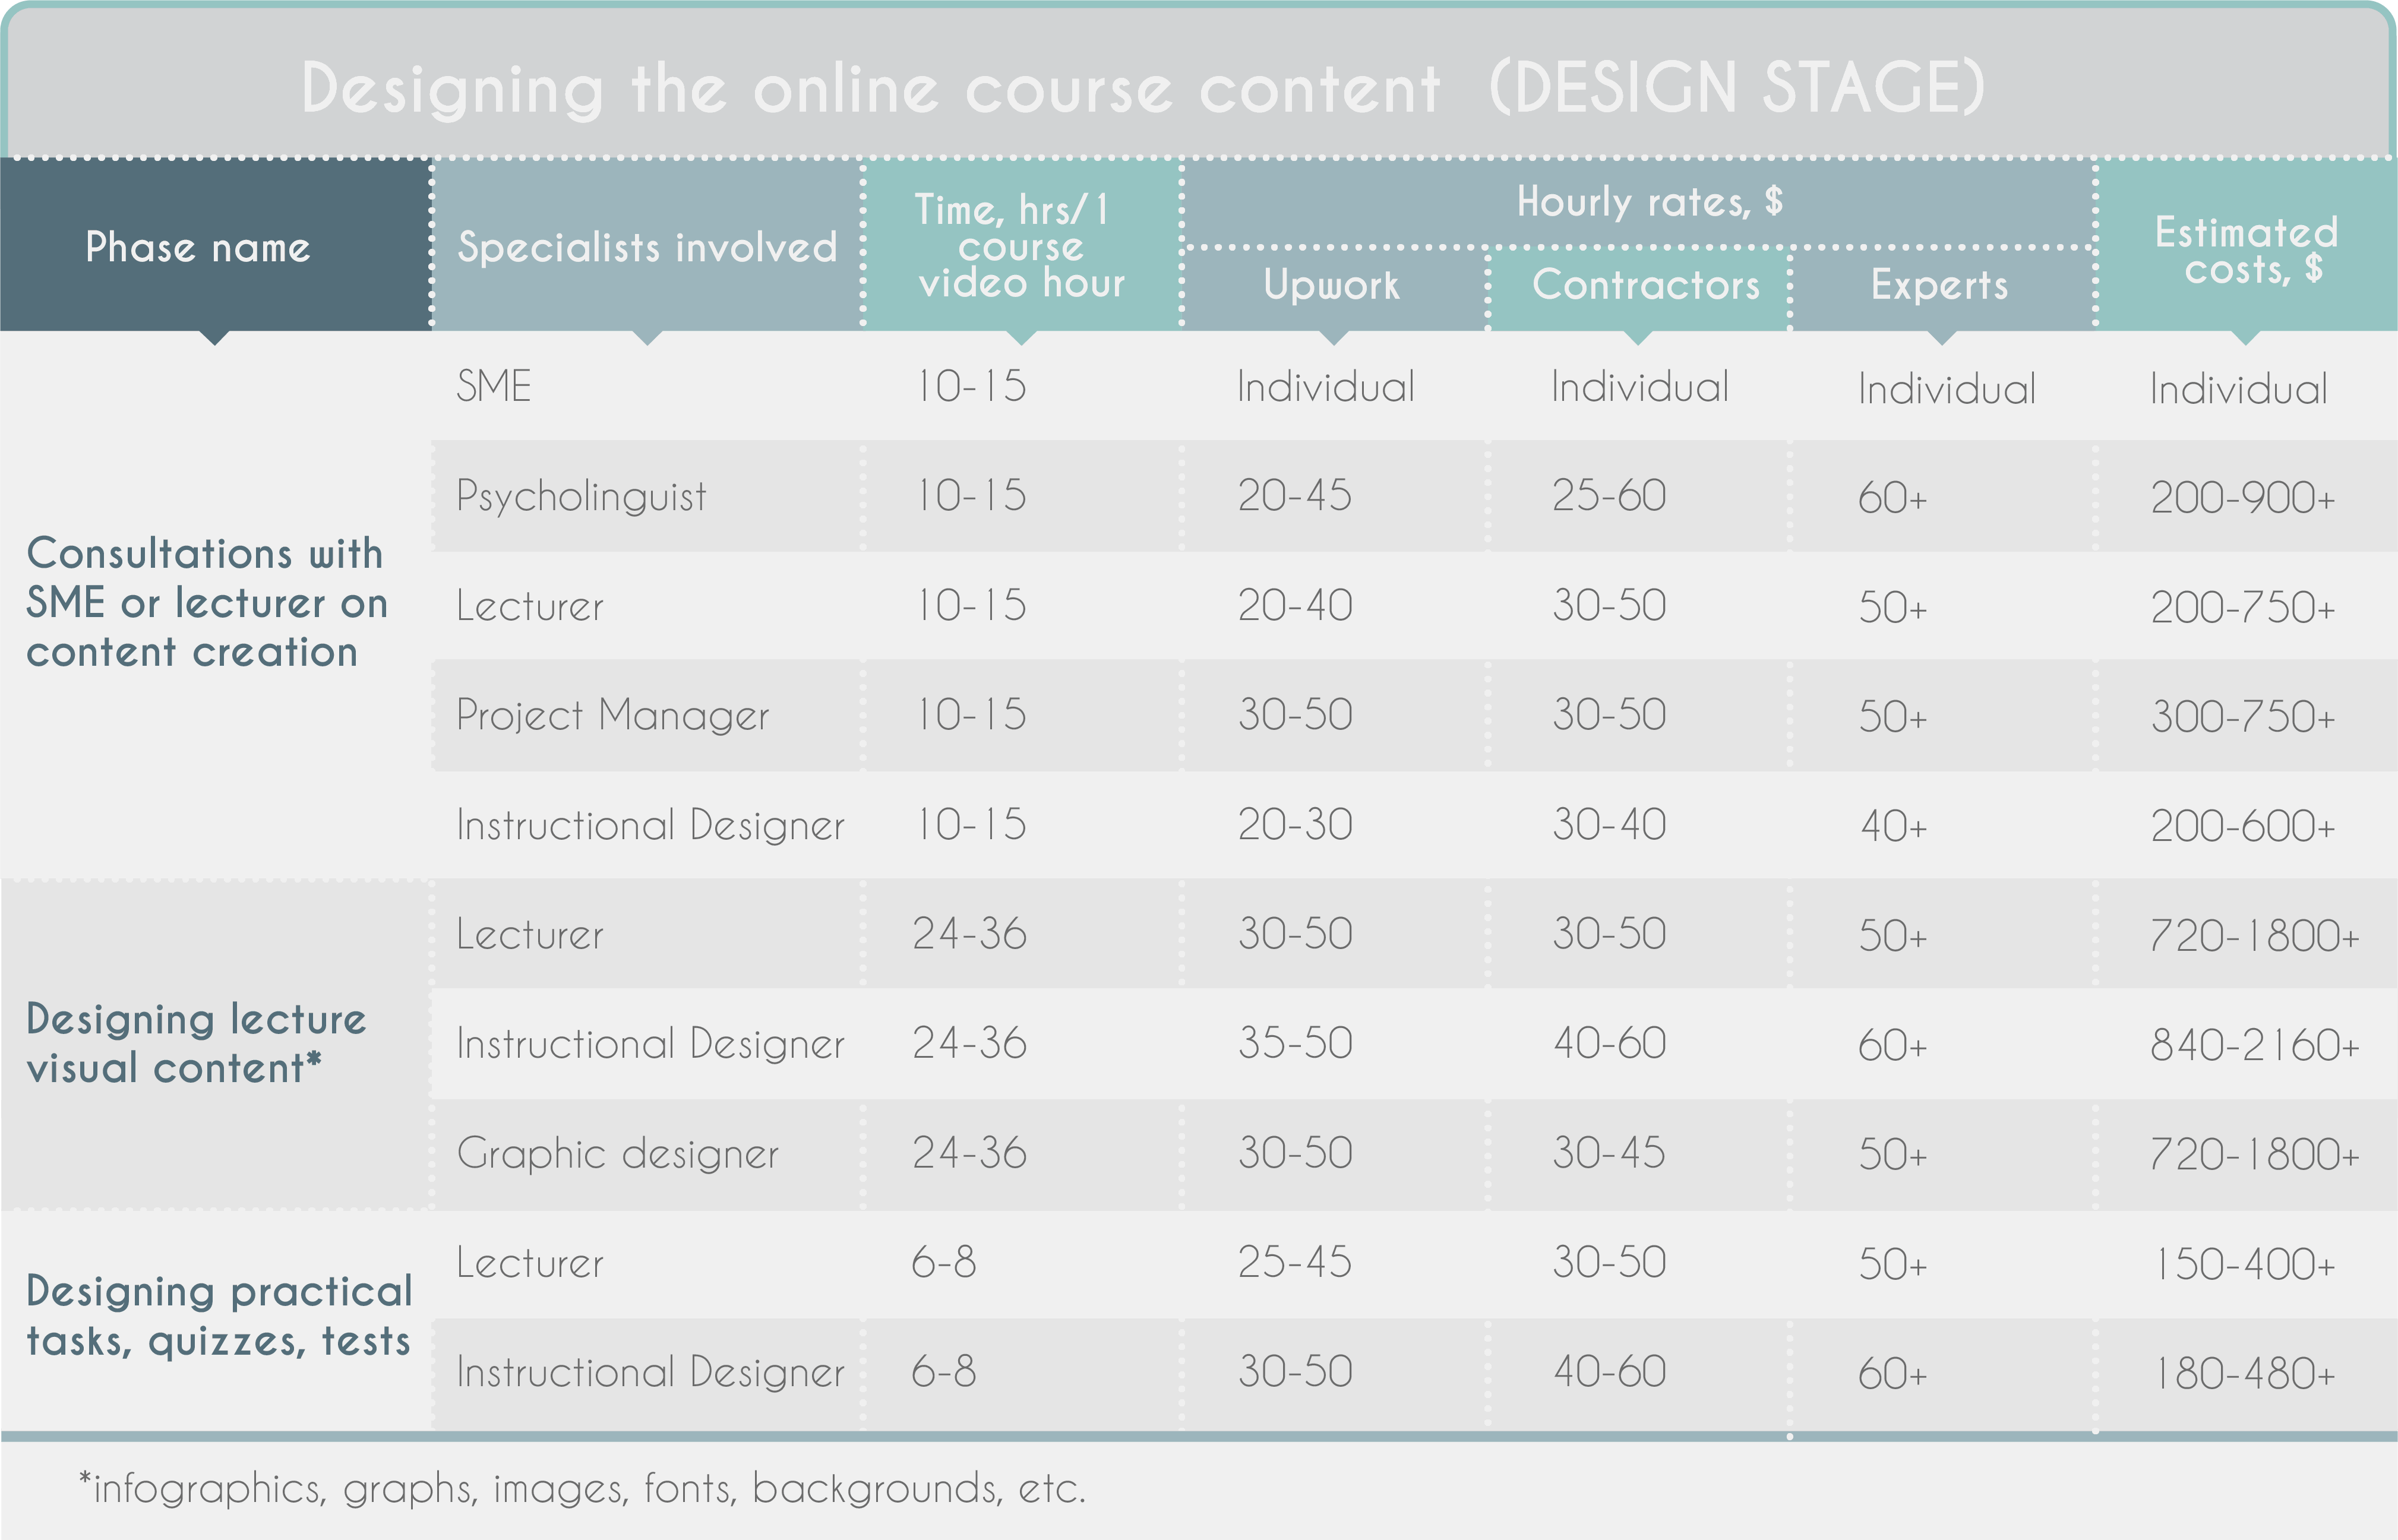 How Much Does It Cost To Create An Online Course In 2018